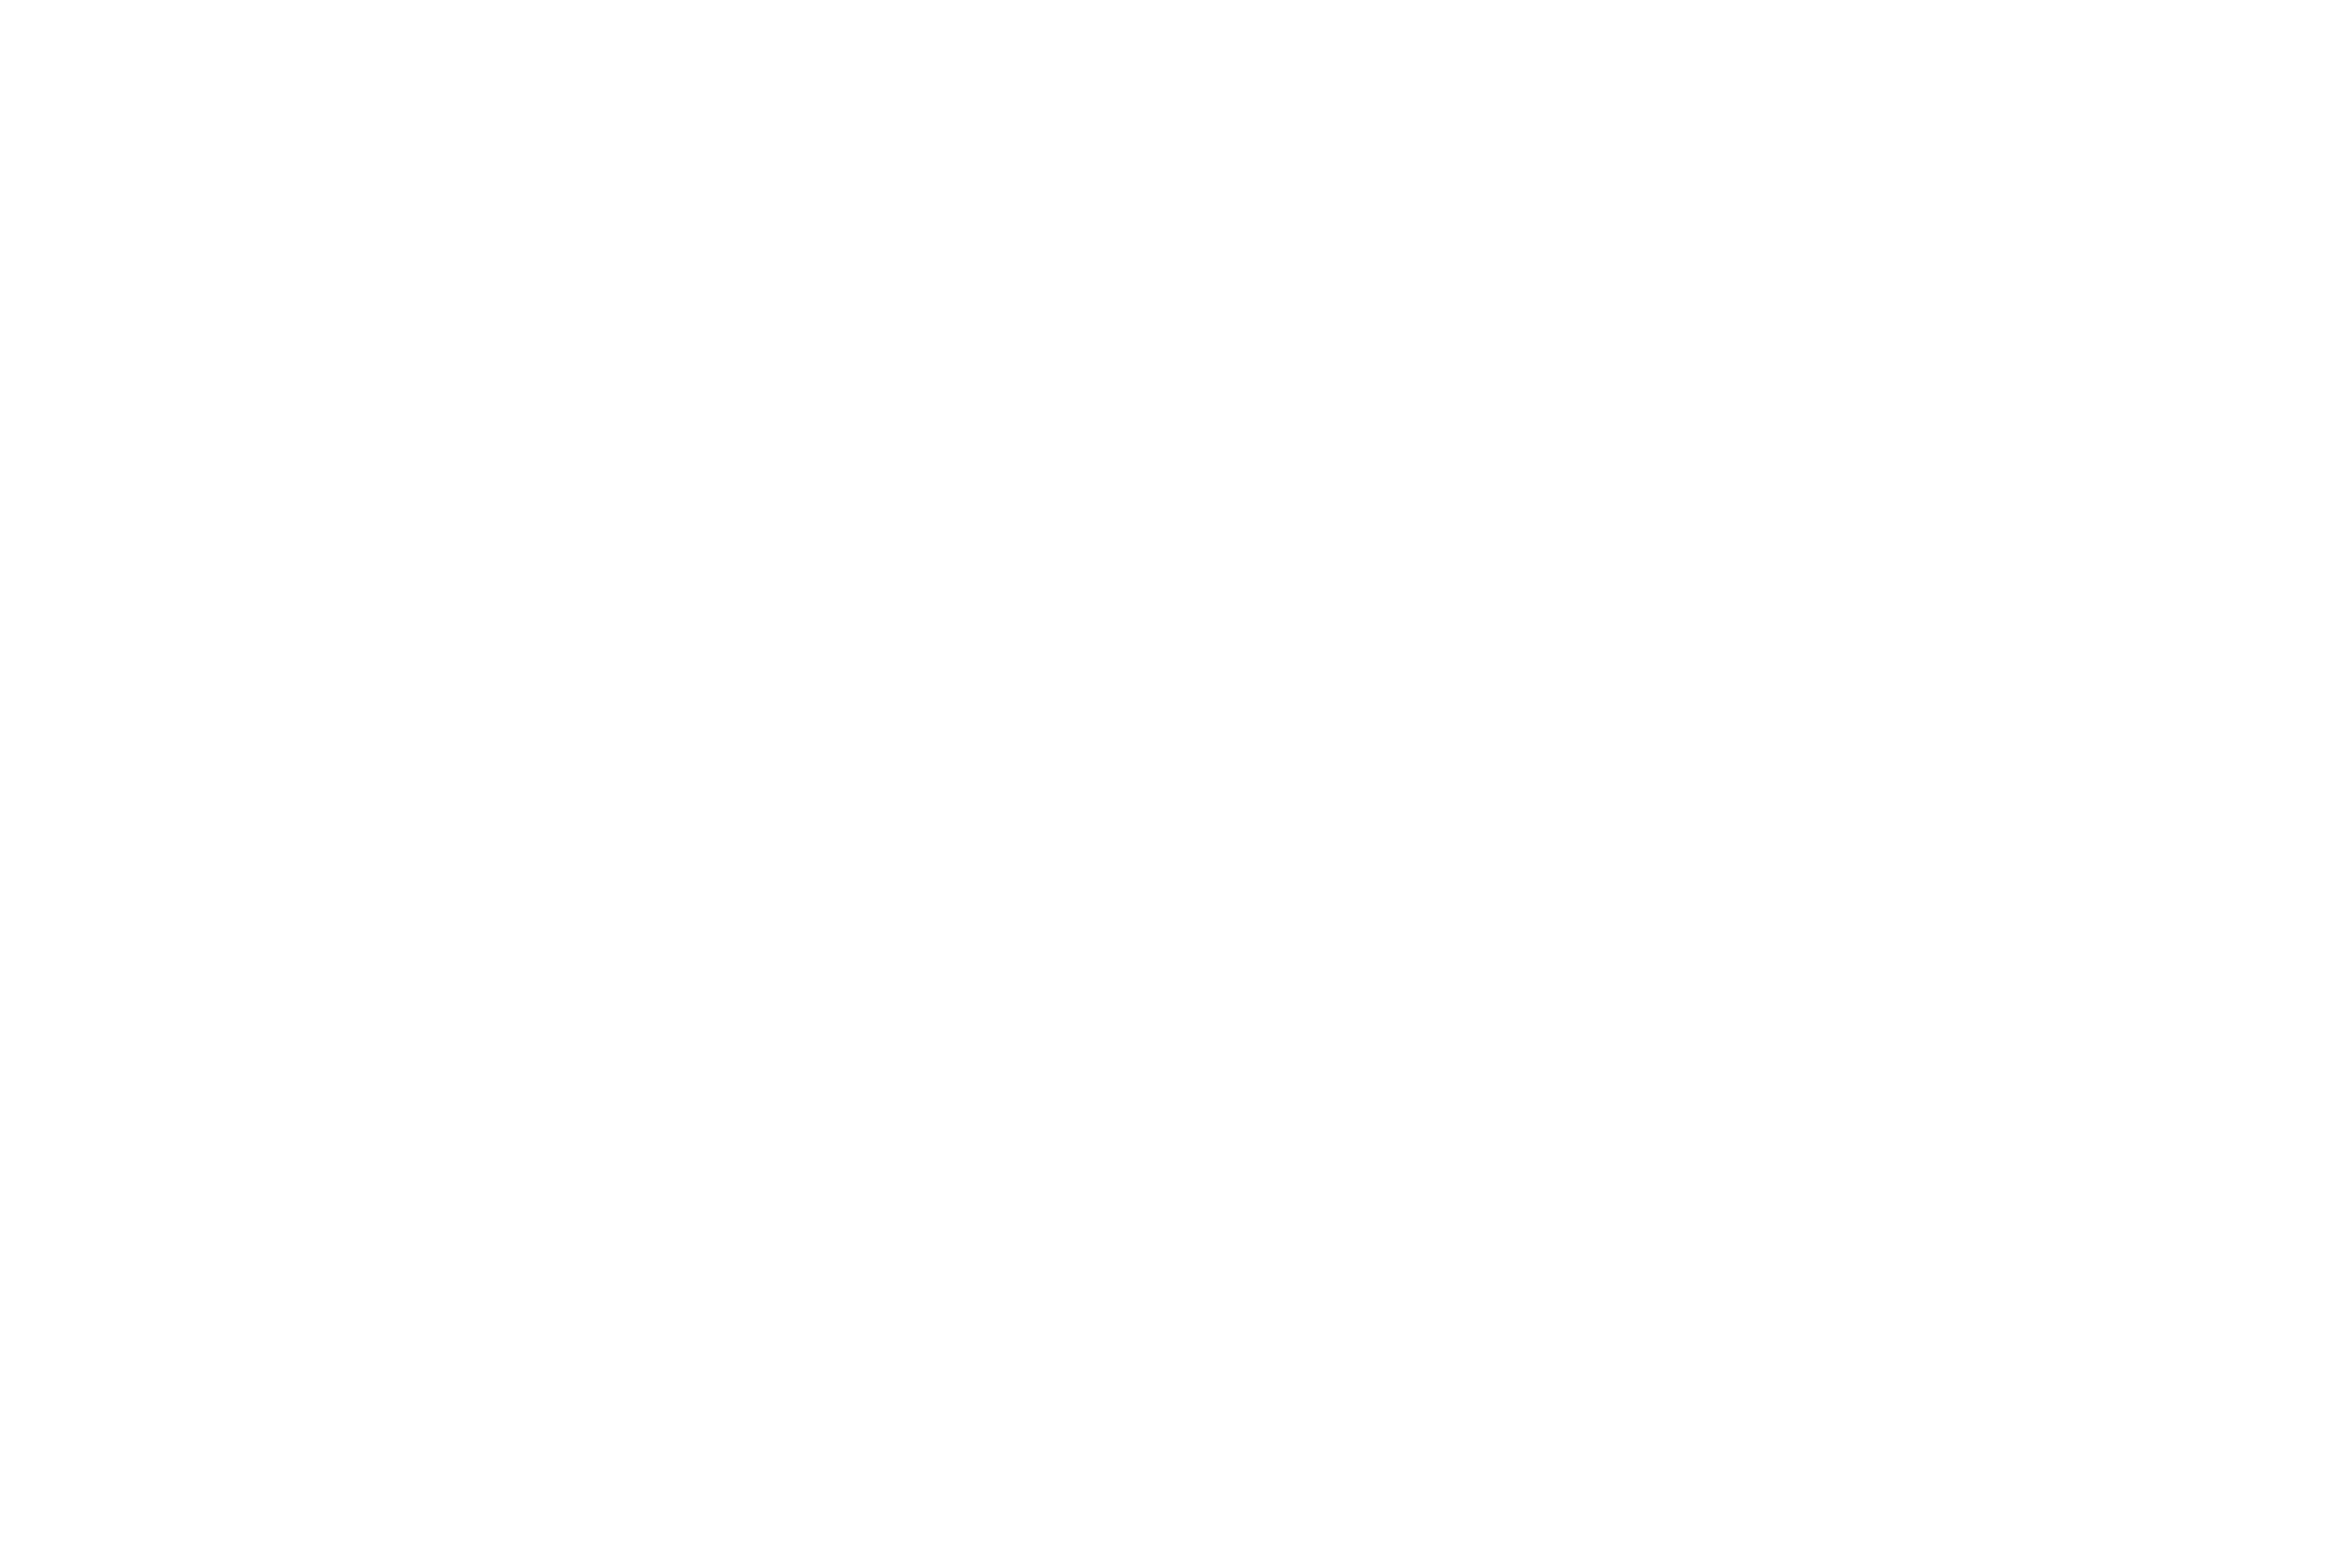 Natasha Baluta Photography